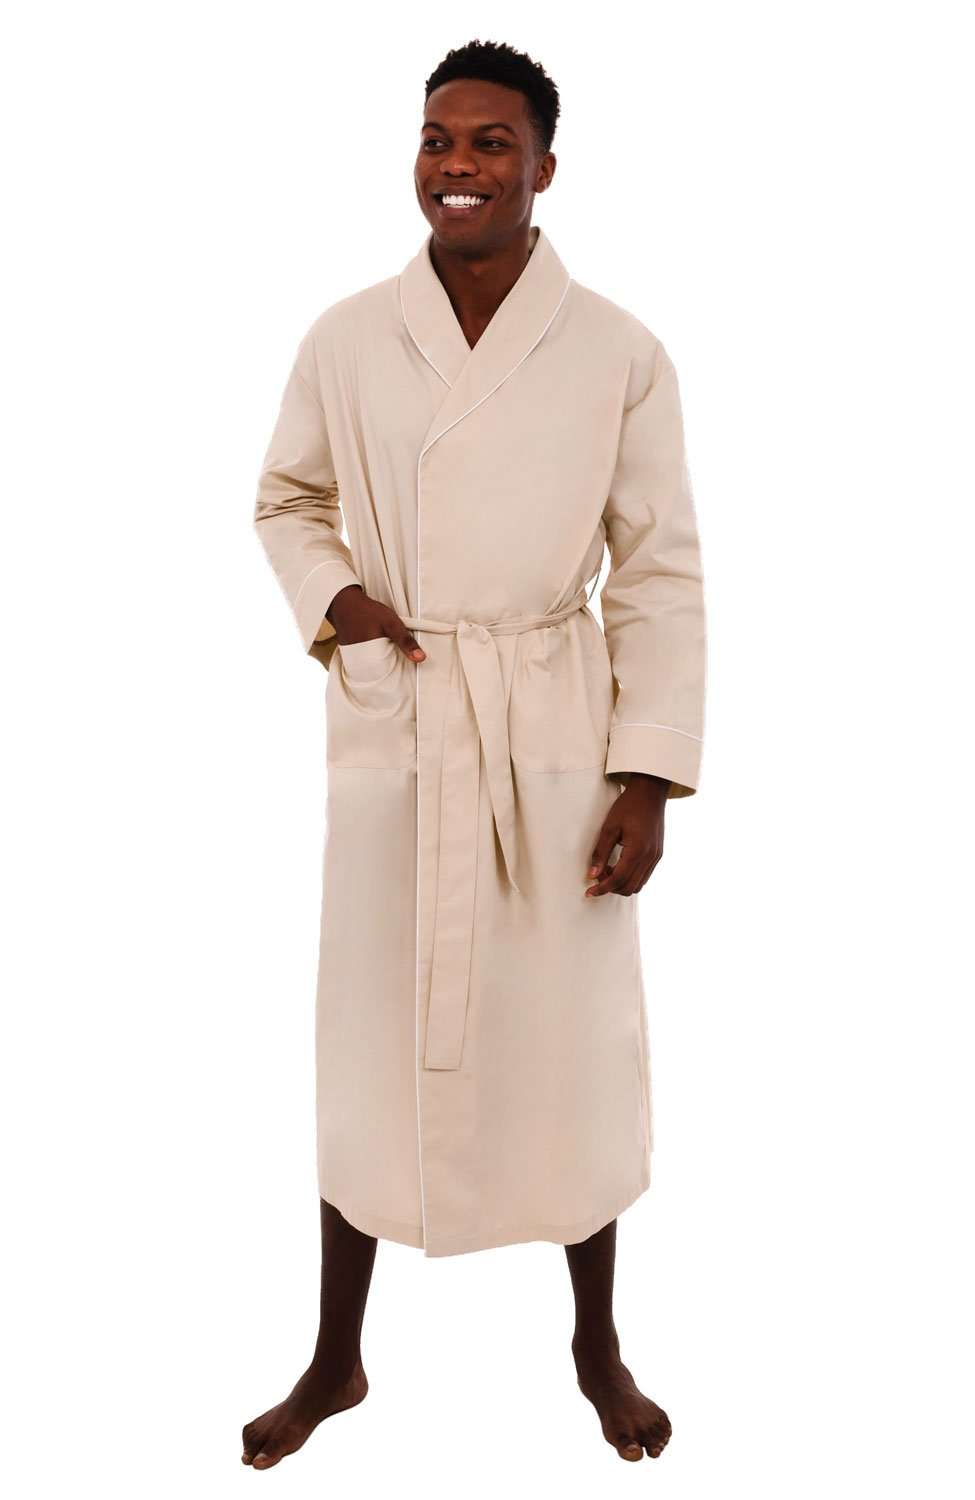 Alexander Del Rossa Mens Solid Cotton Robe, Lightweight Woven Bathrobe A0715-Solid